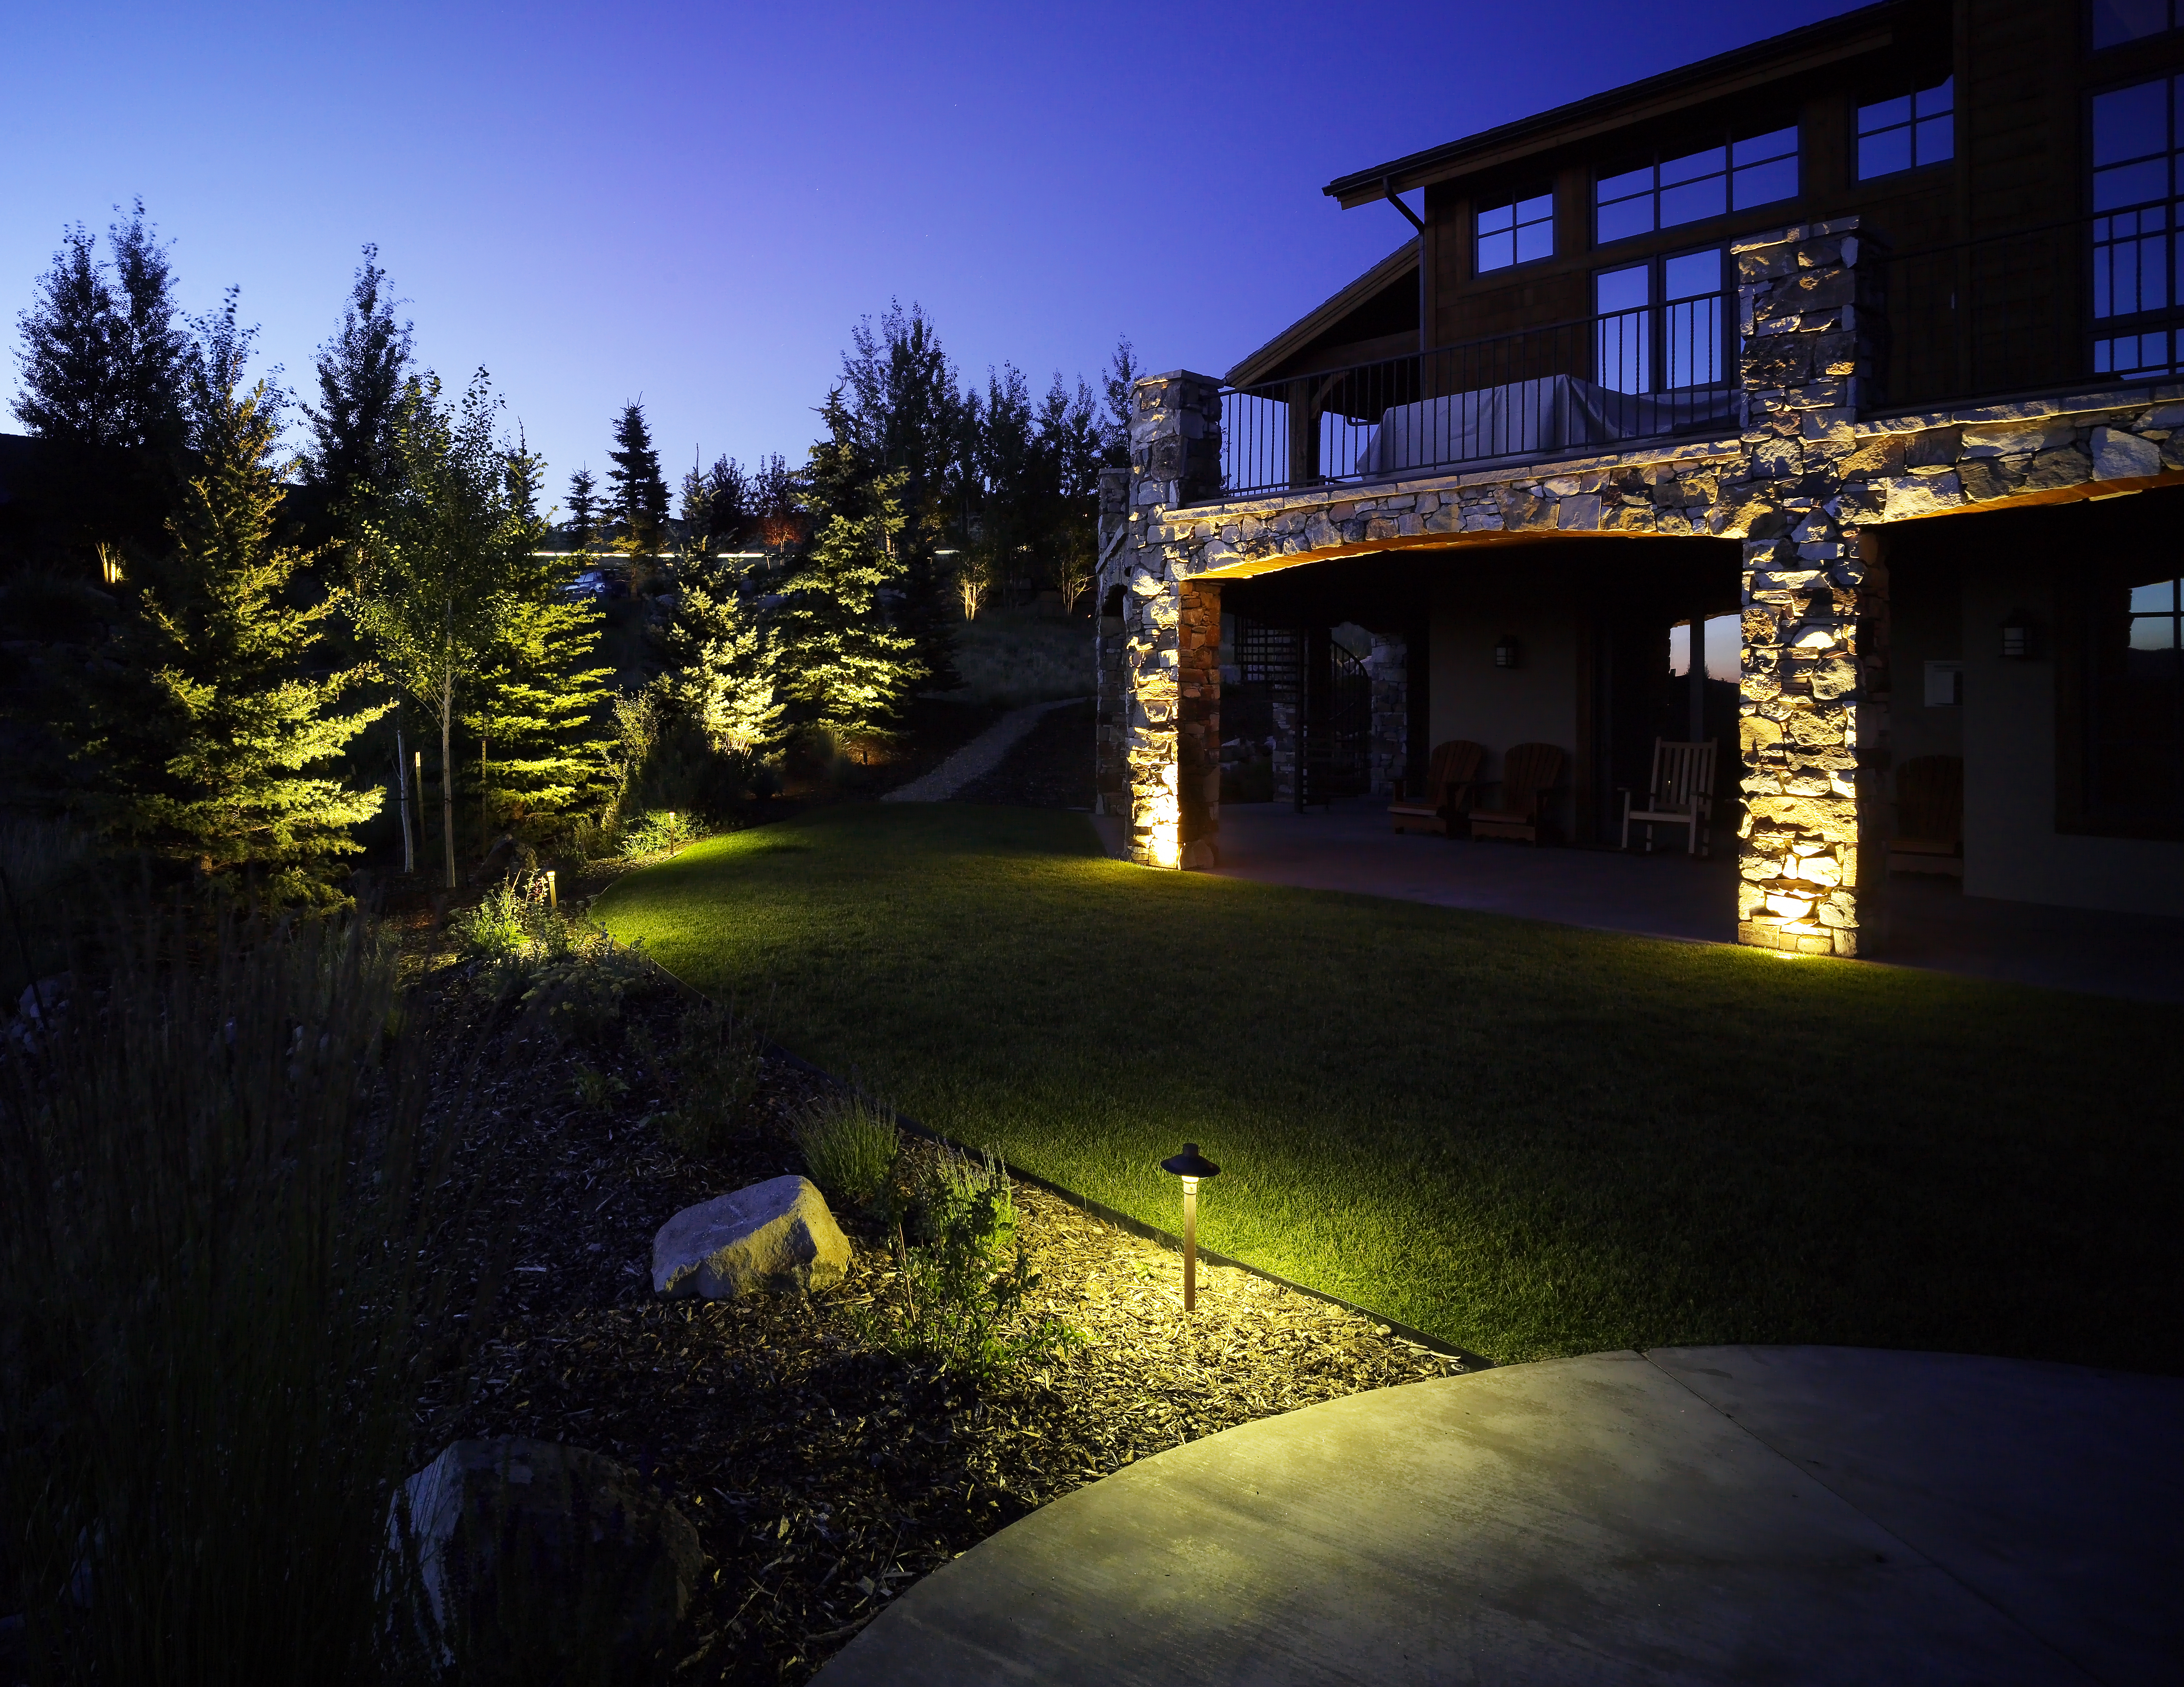 7 Landscape Lighting Maintenance Tasks To Keep Your Residence Glowing This Winter